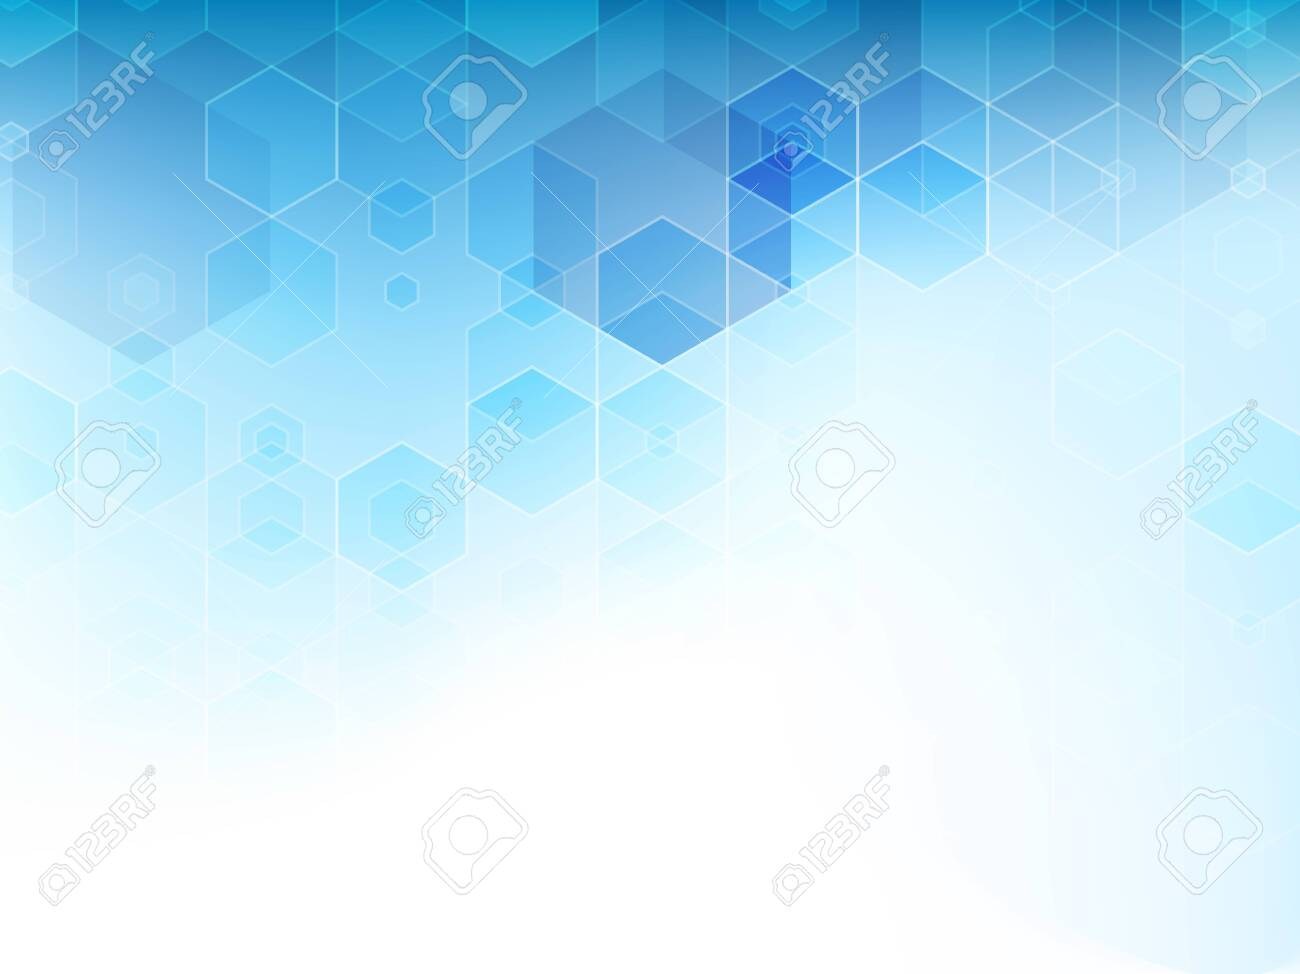 Abstract blue cubes vector background. - 148504288